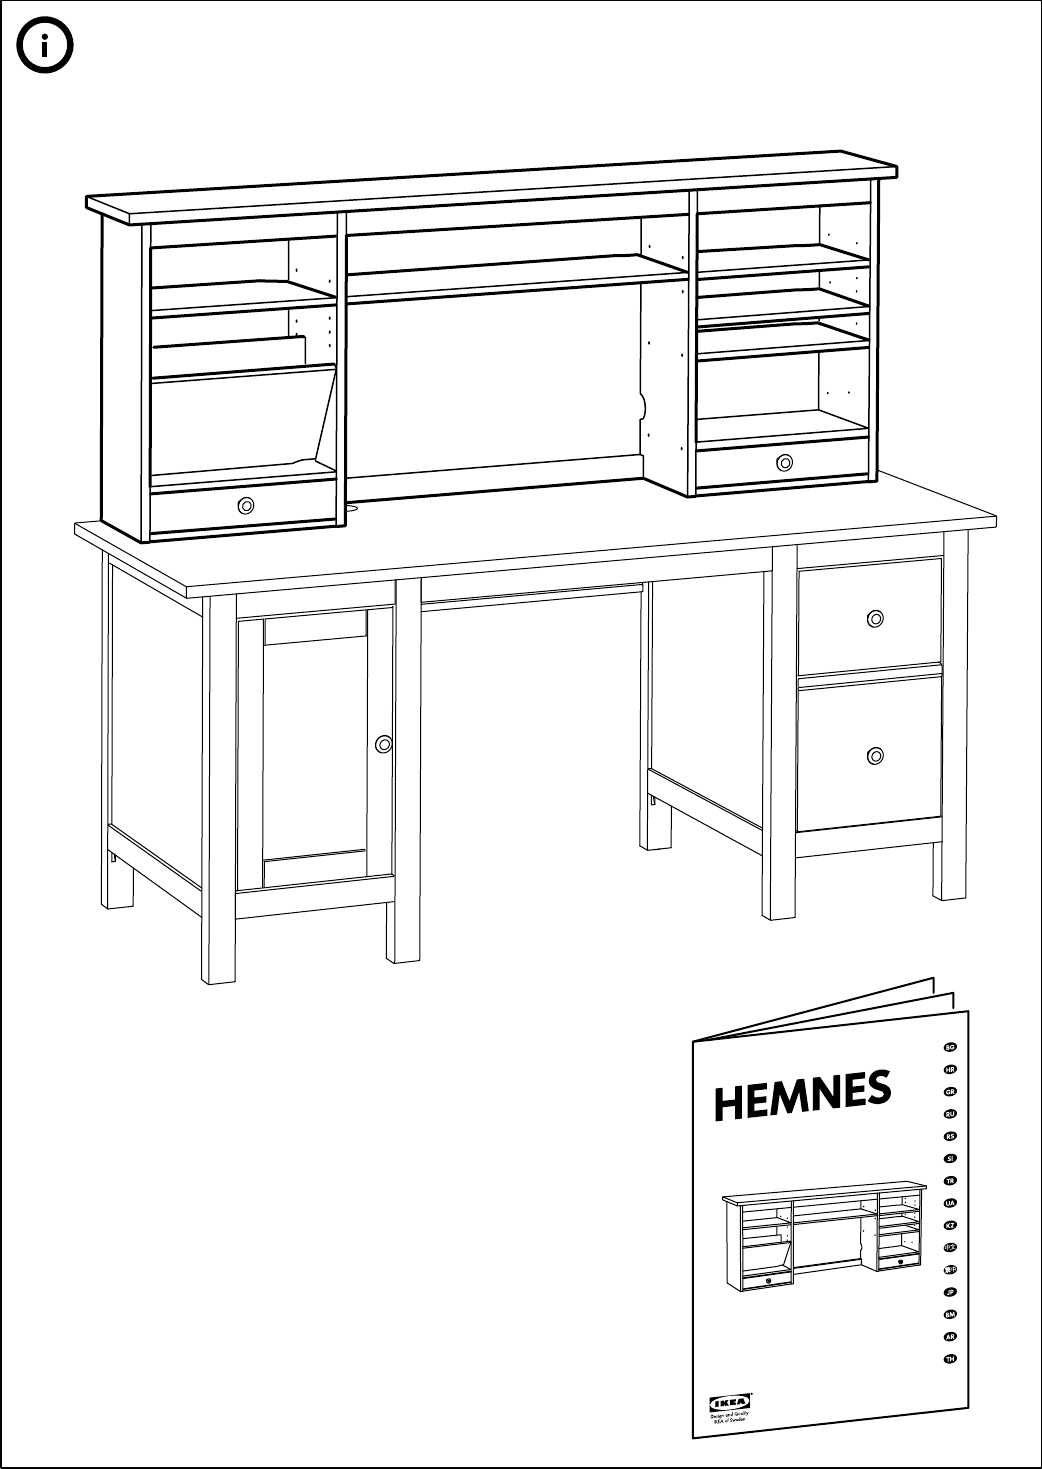 handleiding ikea hemnes bureau pagina 47 van 48 dansk deutsch english espan l fran ais. Black Bedroom Furniture Sets. Home Design Ideas